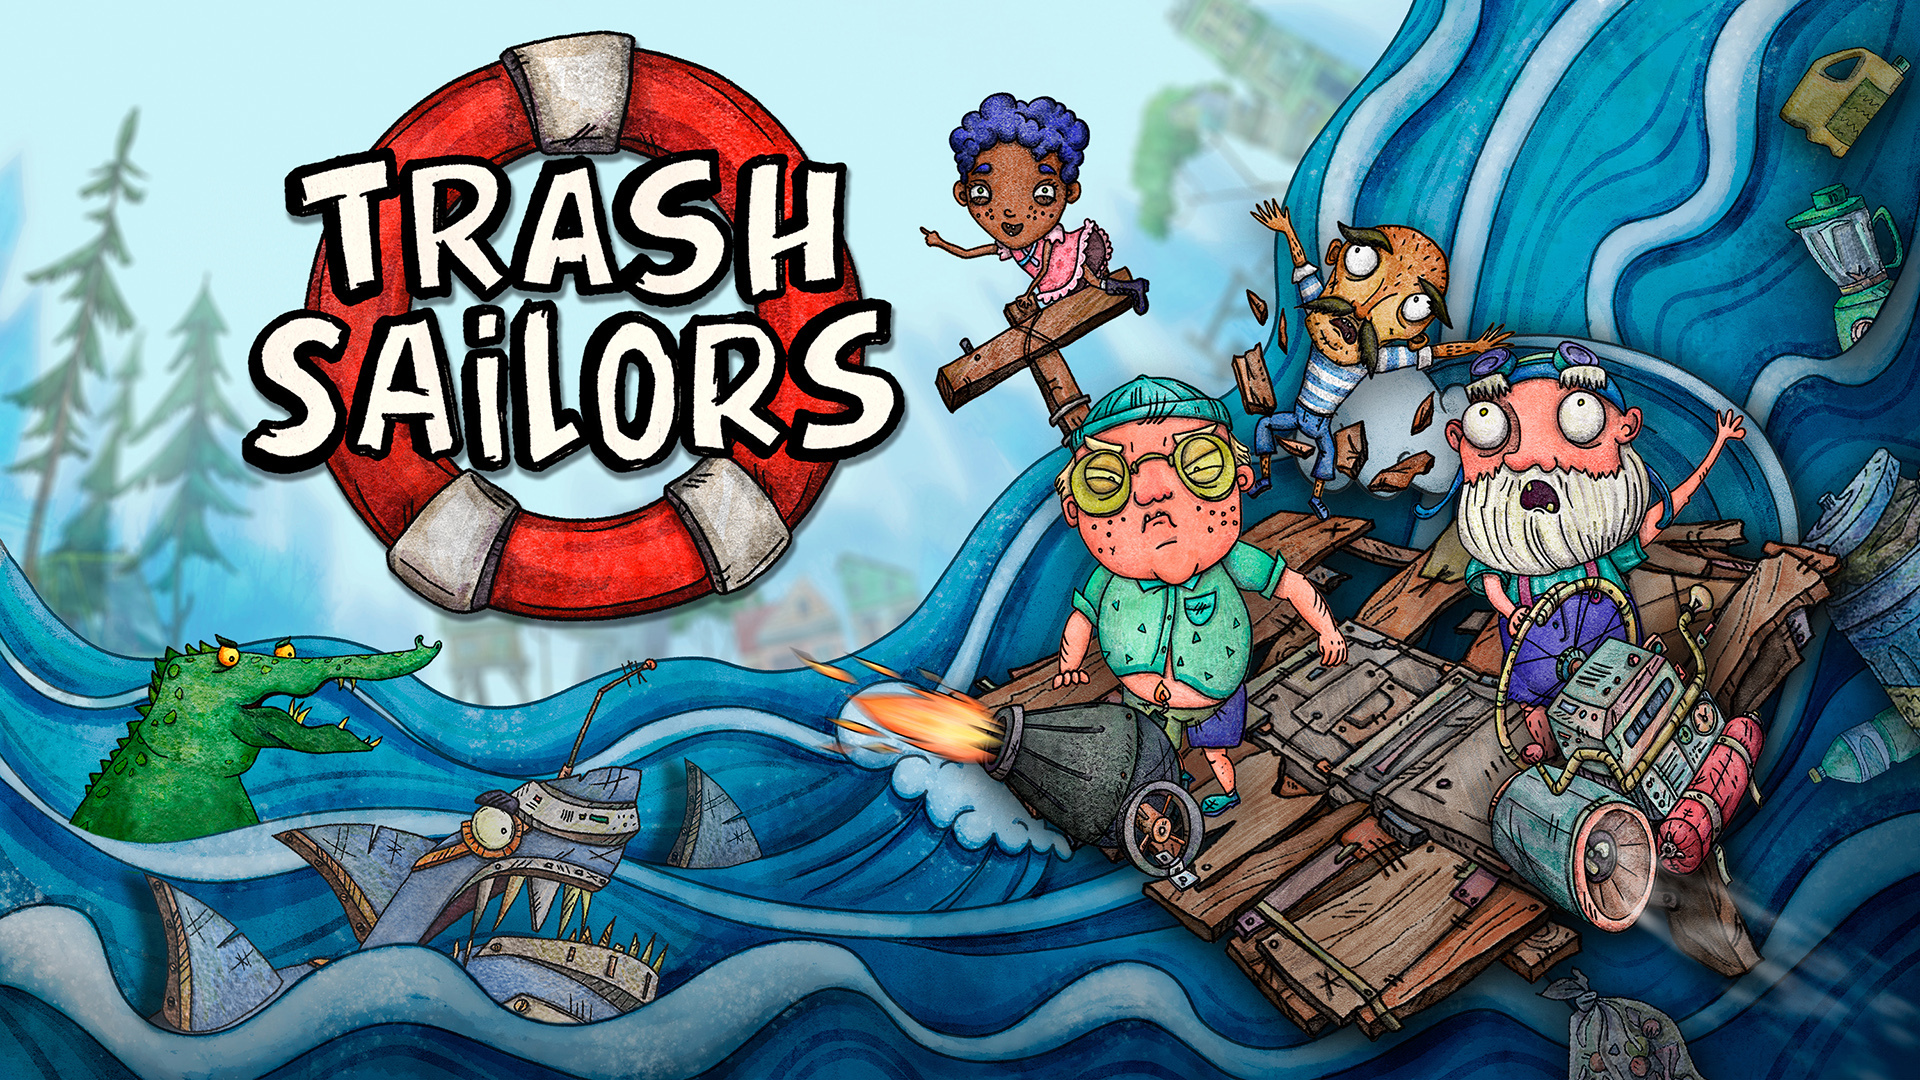 Trash Sailor é anunciado finalmente para Nintendo Switch 5